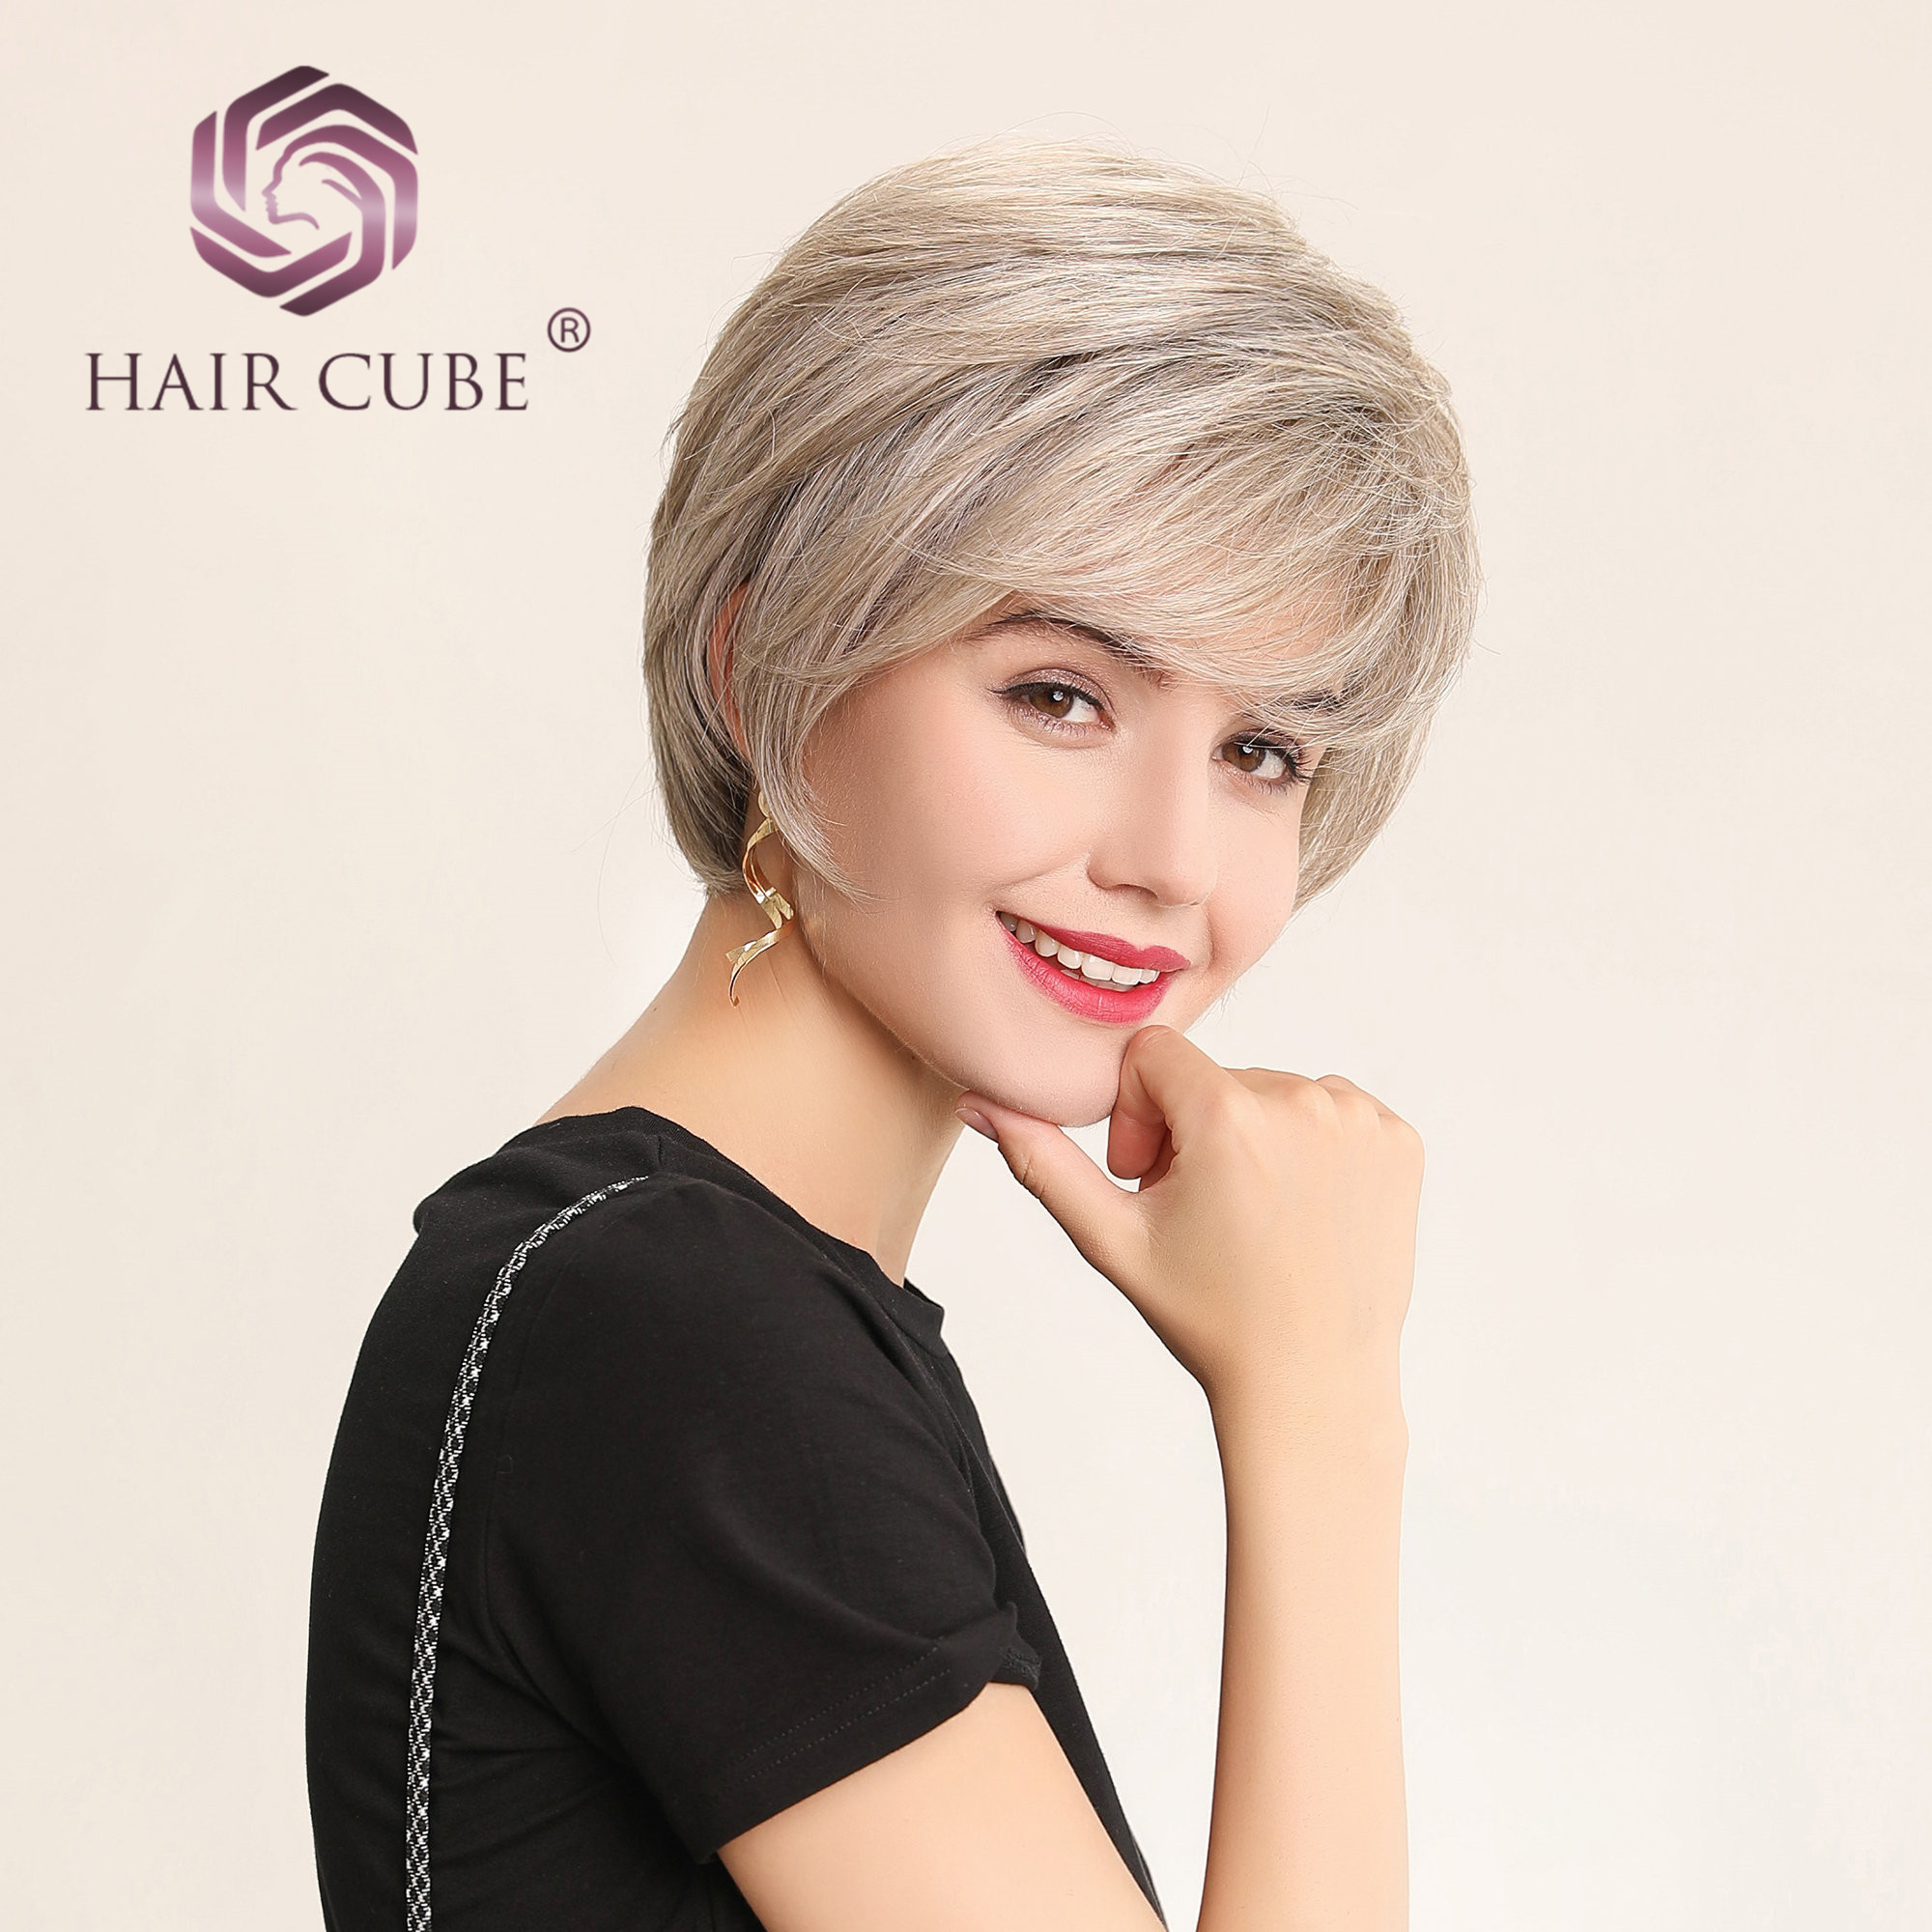 Haircube Synthetic Lace Front Wigs 6 Inch 50% Human Hair Blend Pixie Cut Short Hair Wig With Natural Hairline For Women 4 Colors